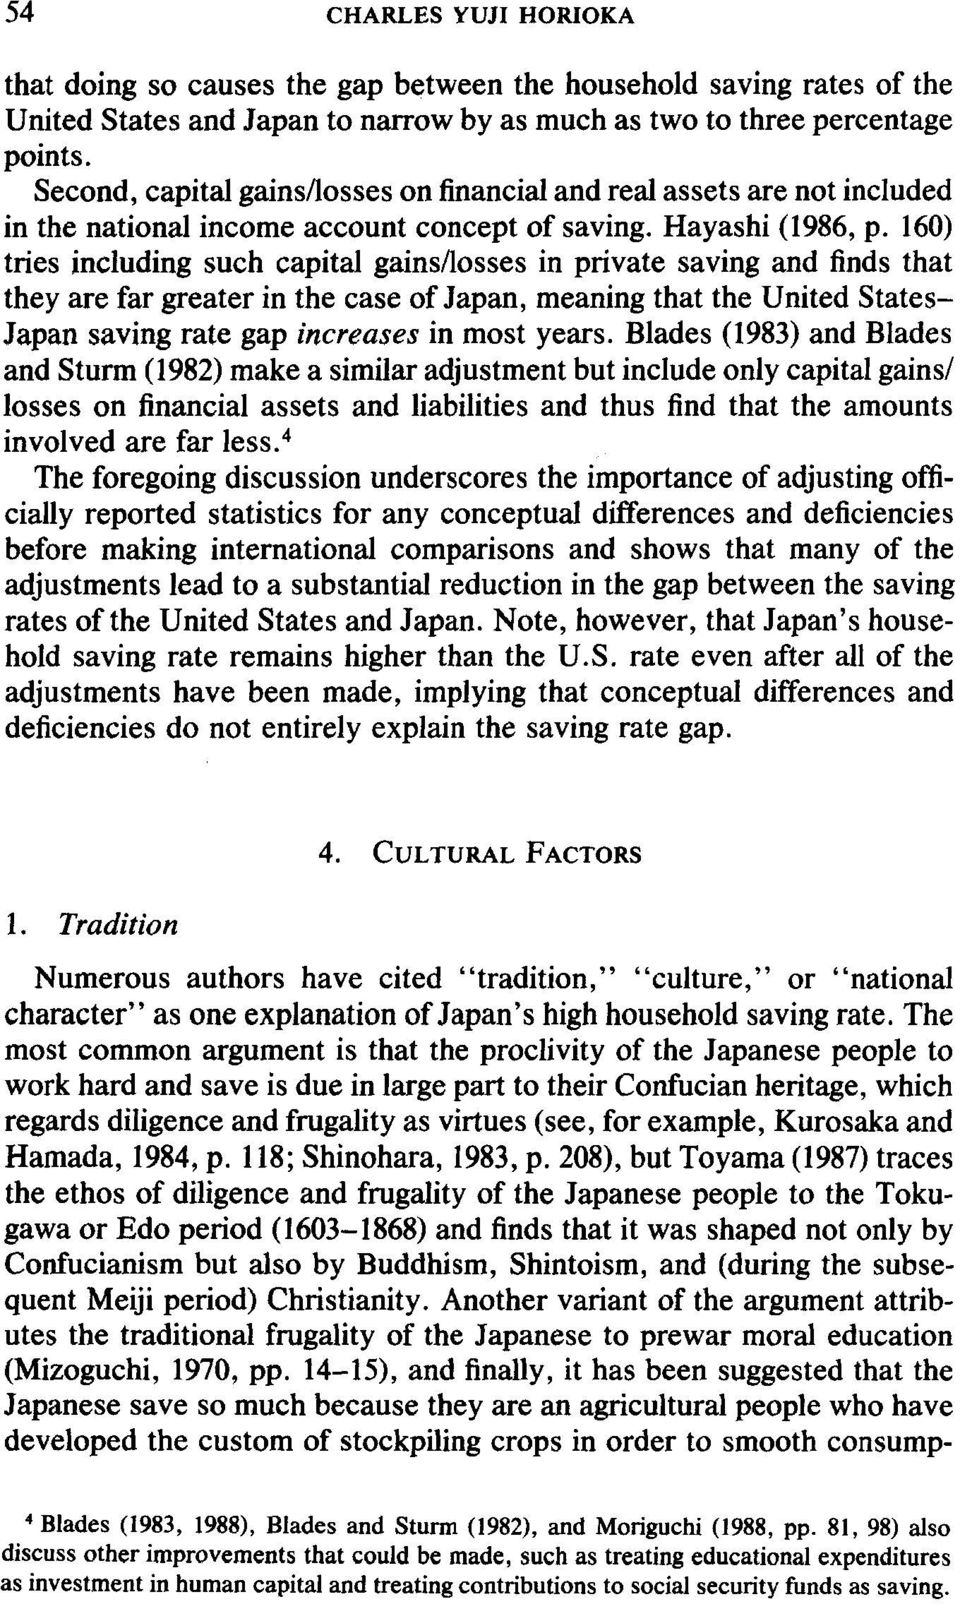 160) tries including such capital gains/losses in private saving and finds that they are far greater in the case of Japan, meaning that the United States- Japan saving rate gap increases in most